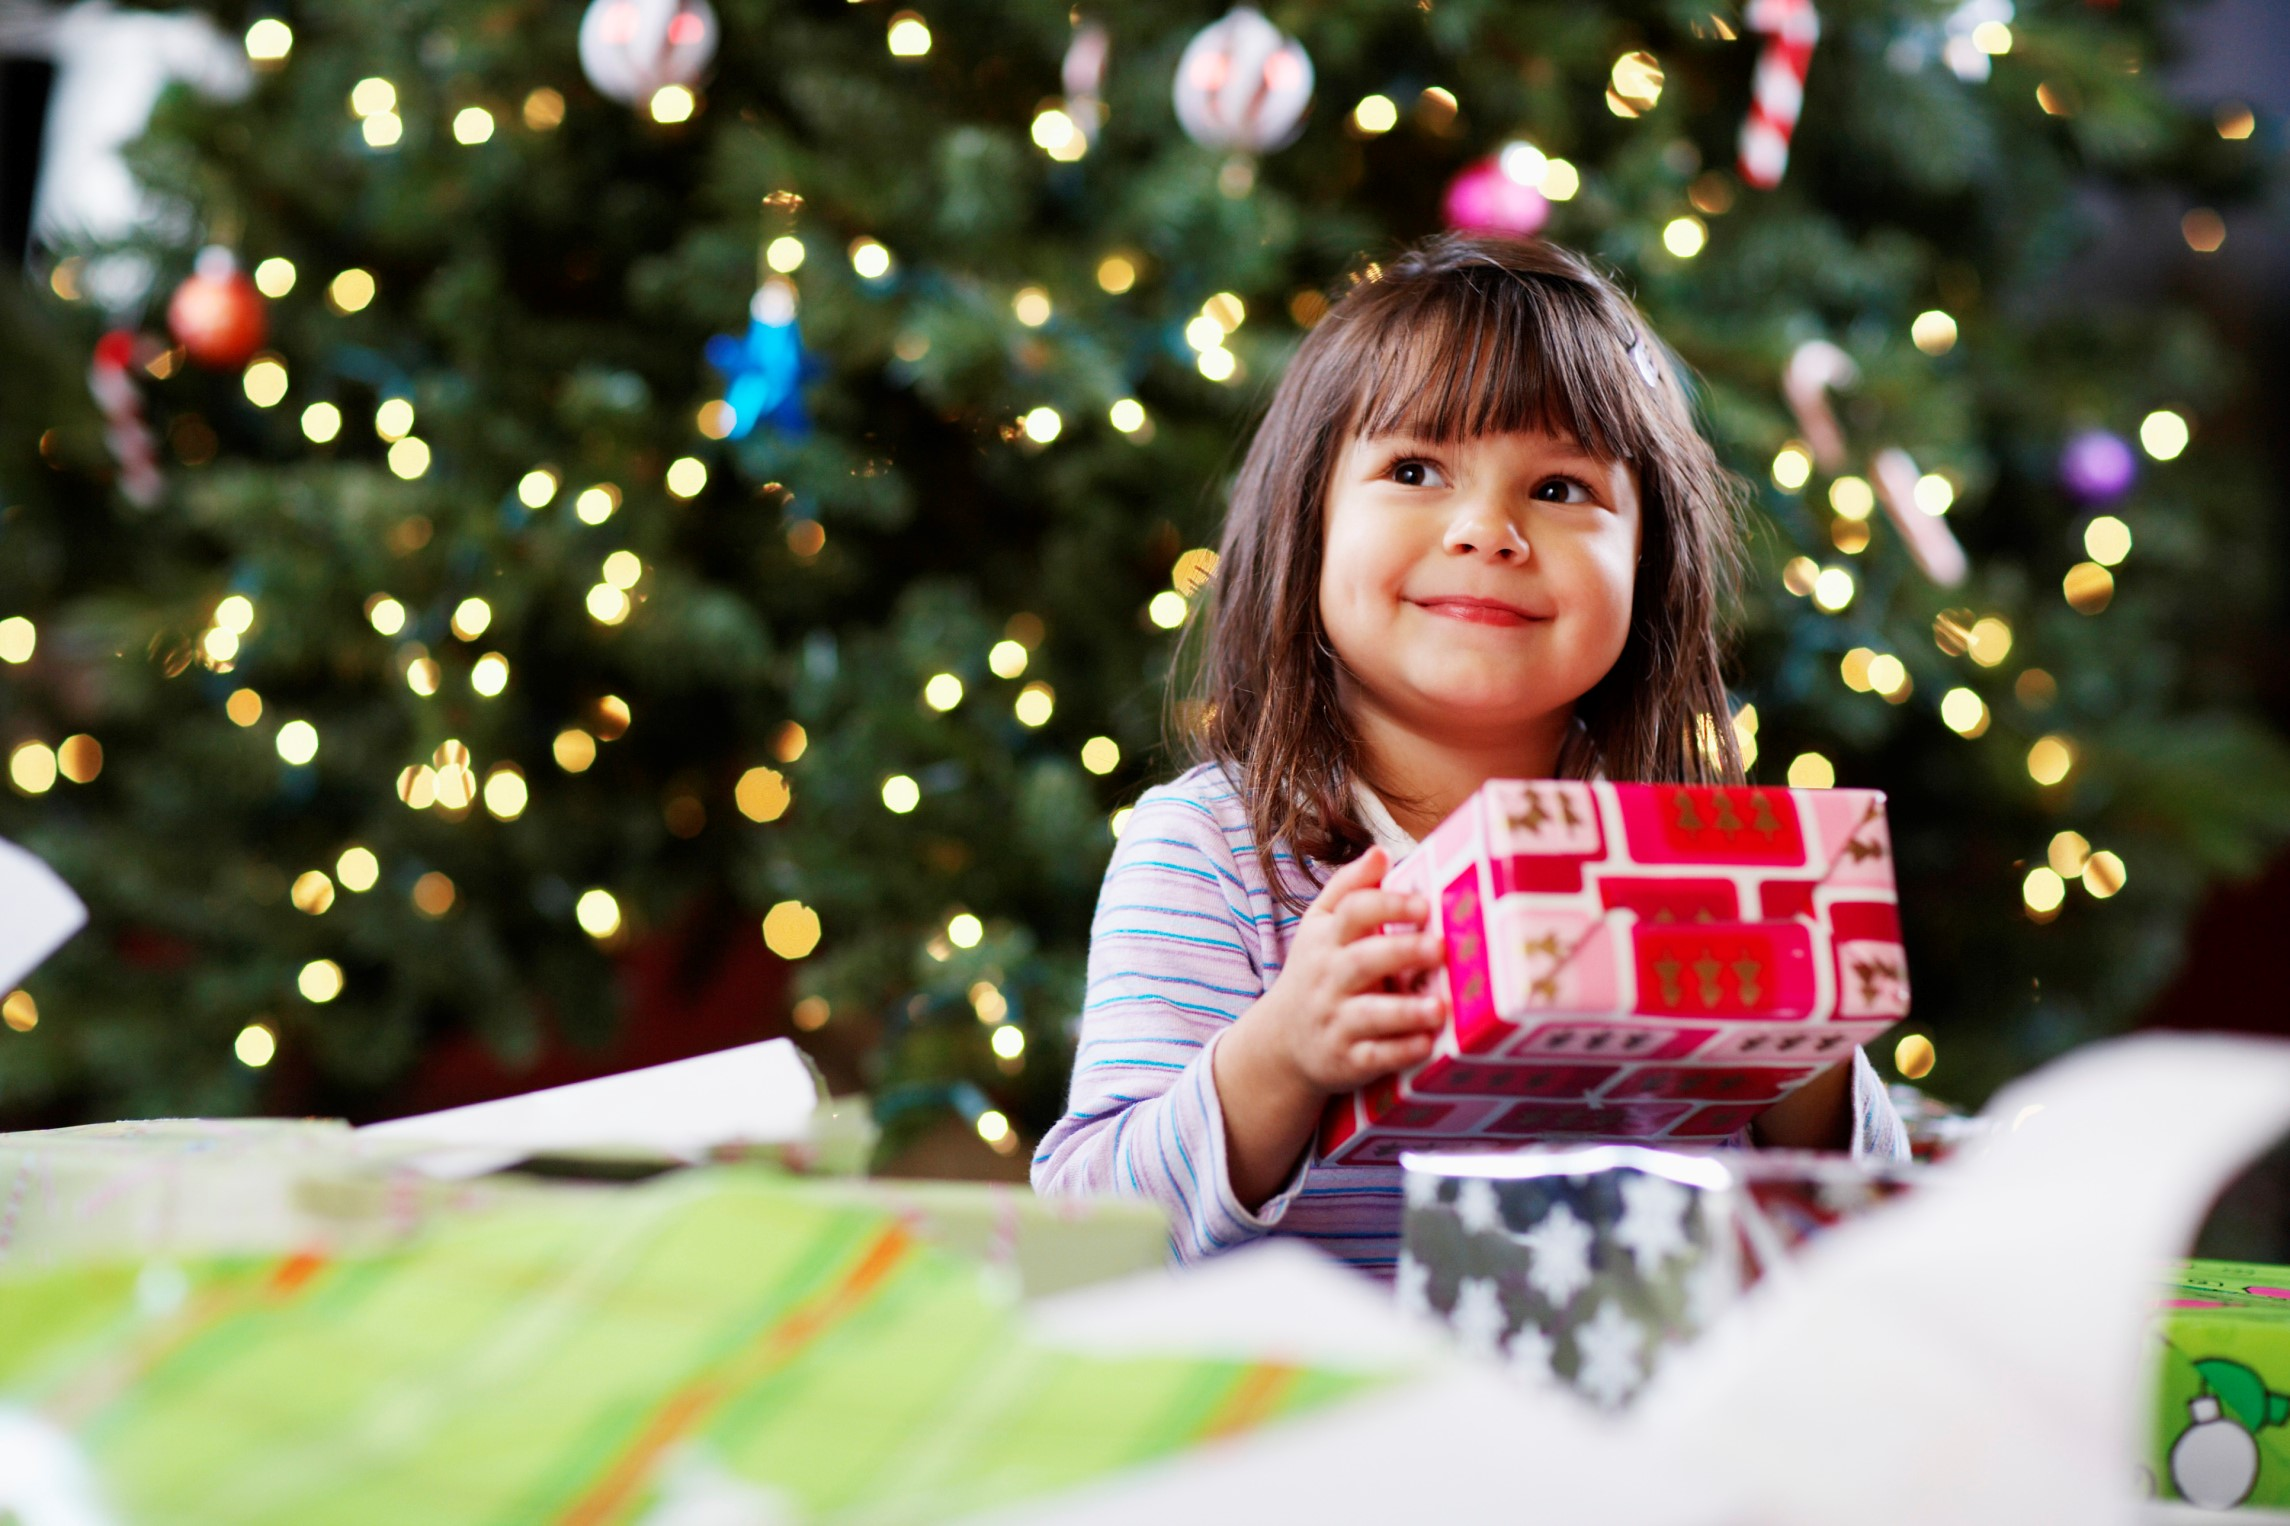 Photo of little girl smiling with gift in hand and Christmas tree in background.